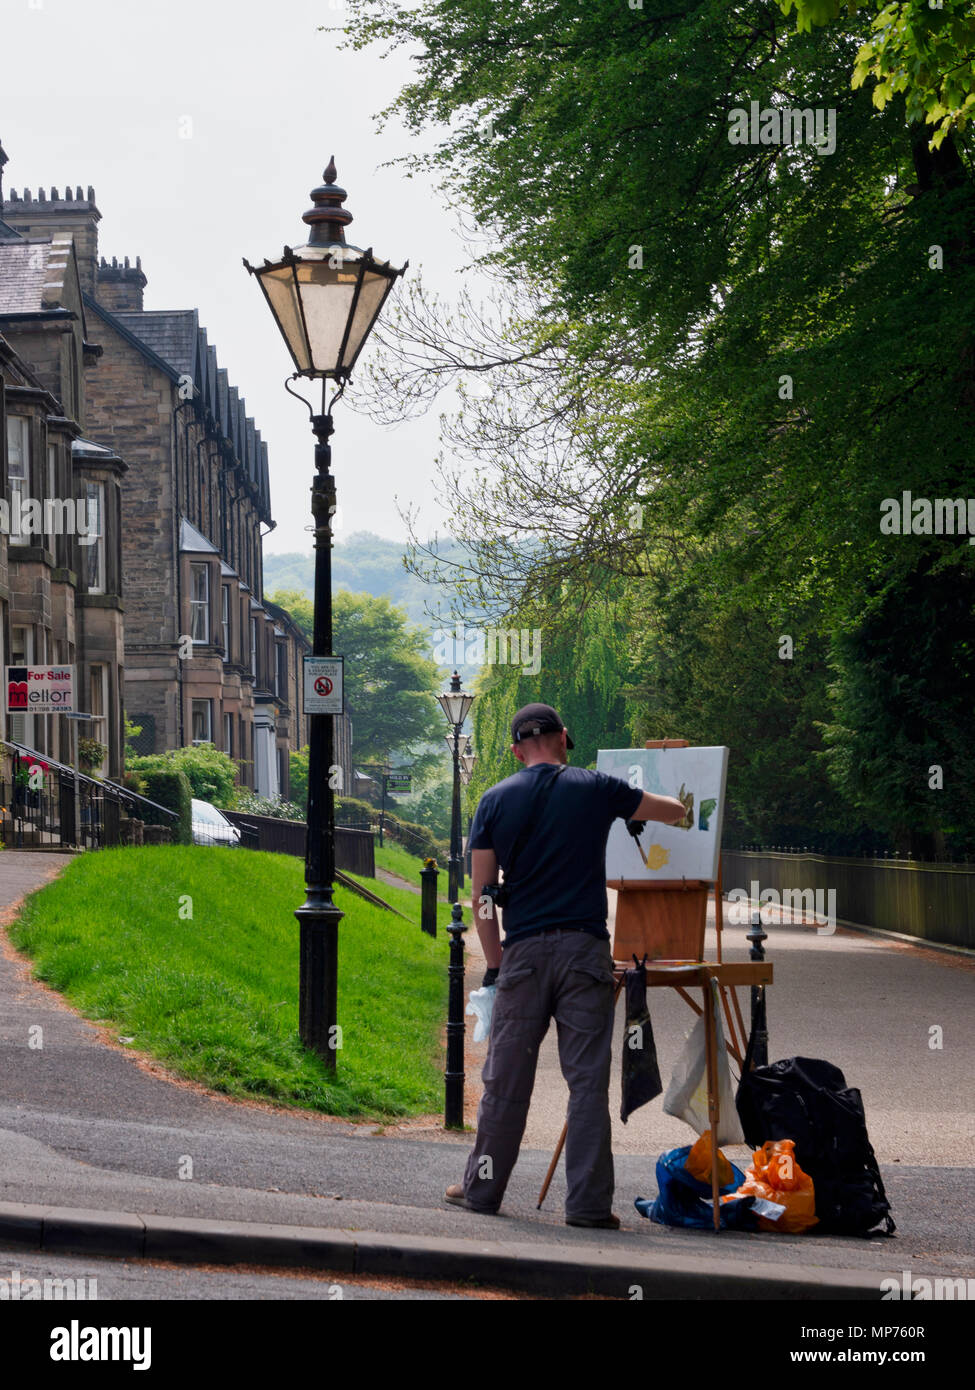 Buxton Victorian Pavilion Gardens, UK. 21st may 2018. Weather UK: Artist paining in the warm summer sunshine in the Buxton Victorian Pavilion Gardens, Derbyshire Credit: Doug Blane/Alamy Live News - Stock Image